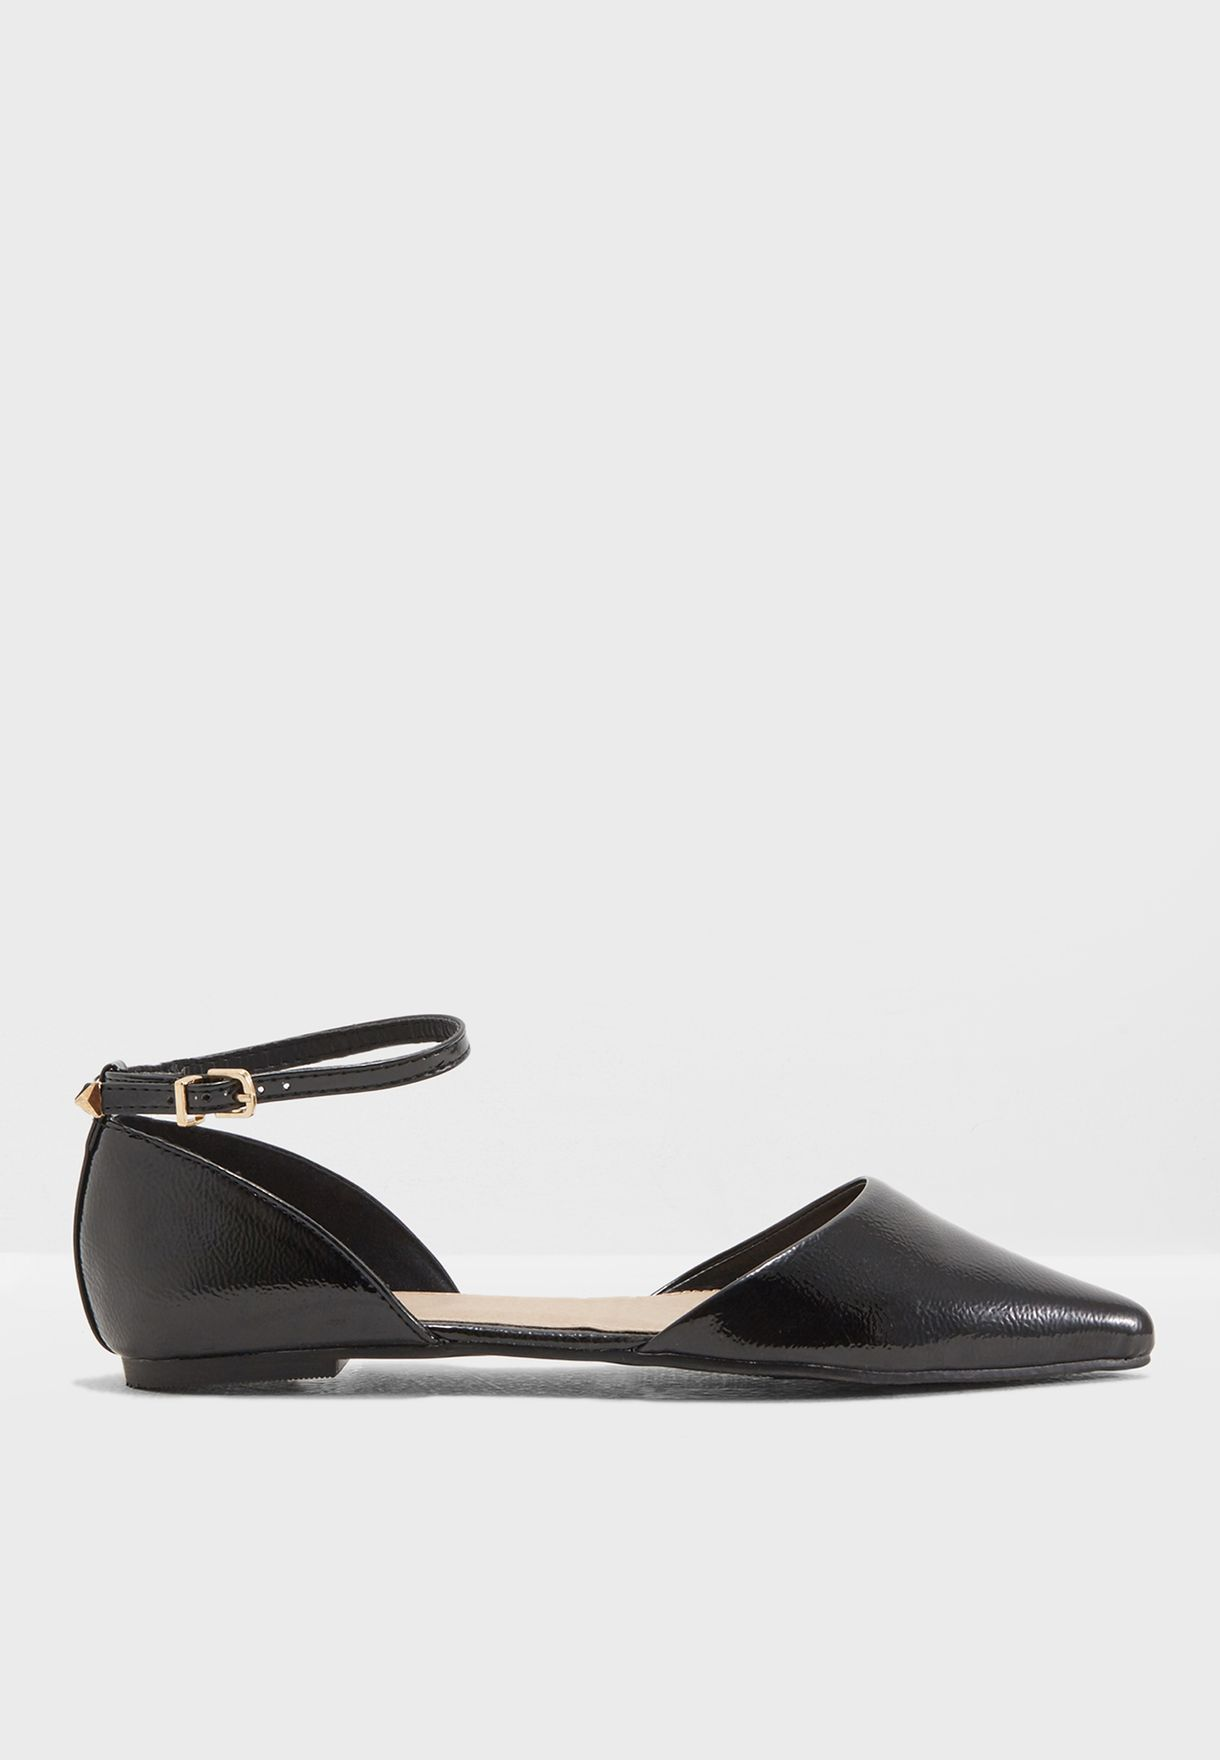 2895d941912 Shop Topshop black Annie Pointed Shoes 42A37MBLK for Women in Bahrain -  TO856SH47NJK